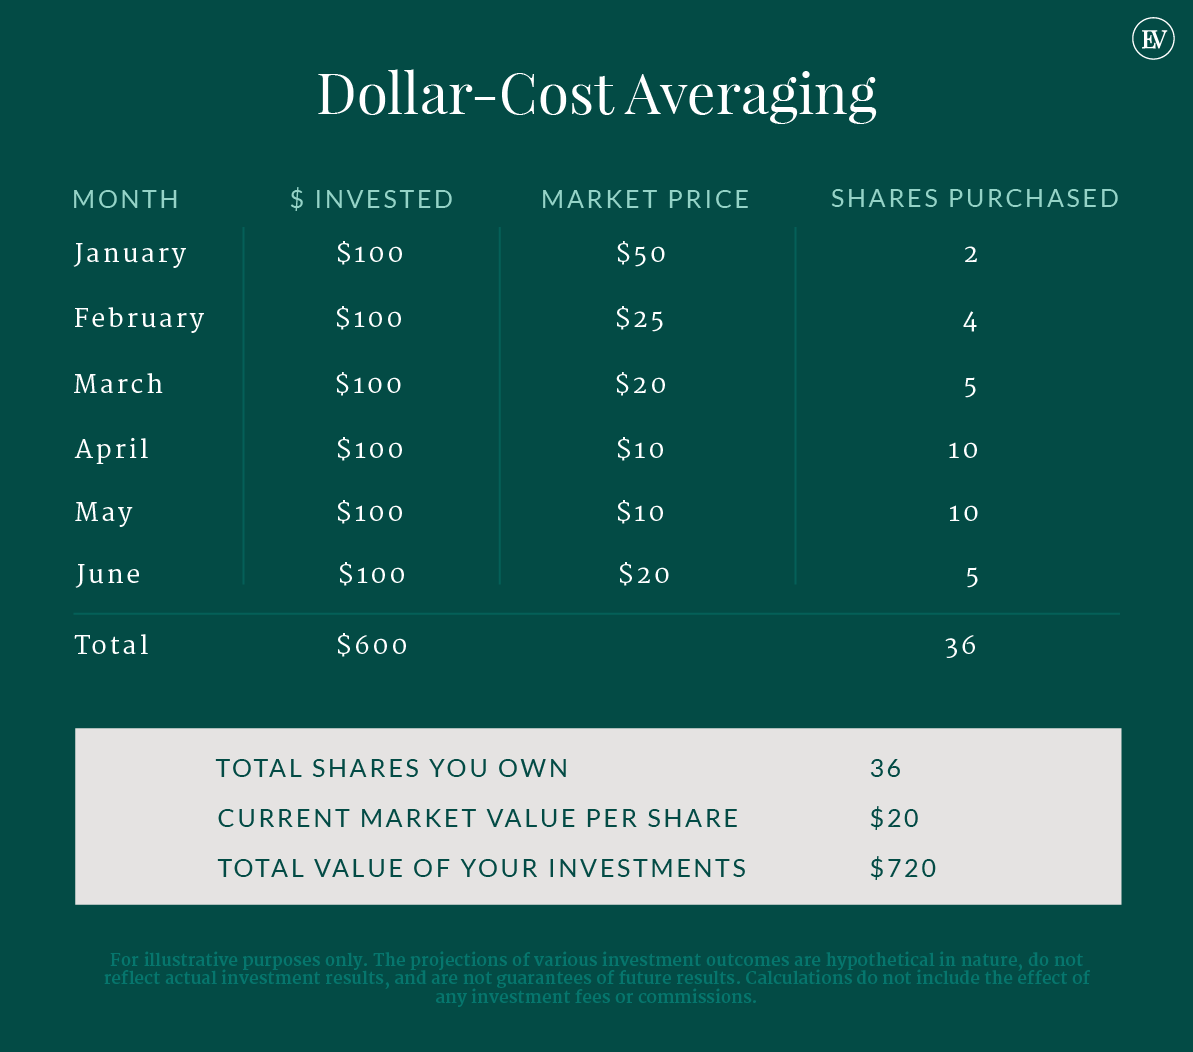 Dollar-Cost Averaging Comparison